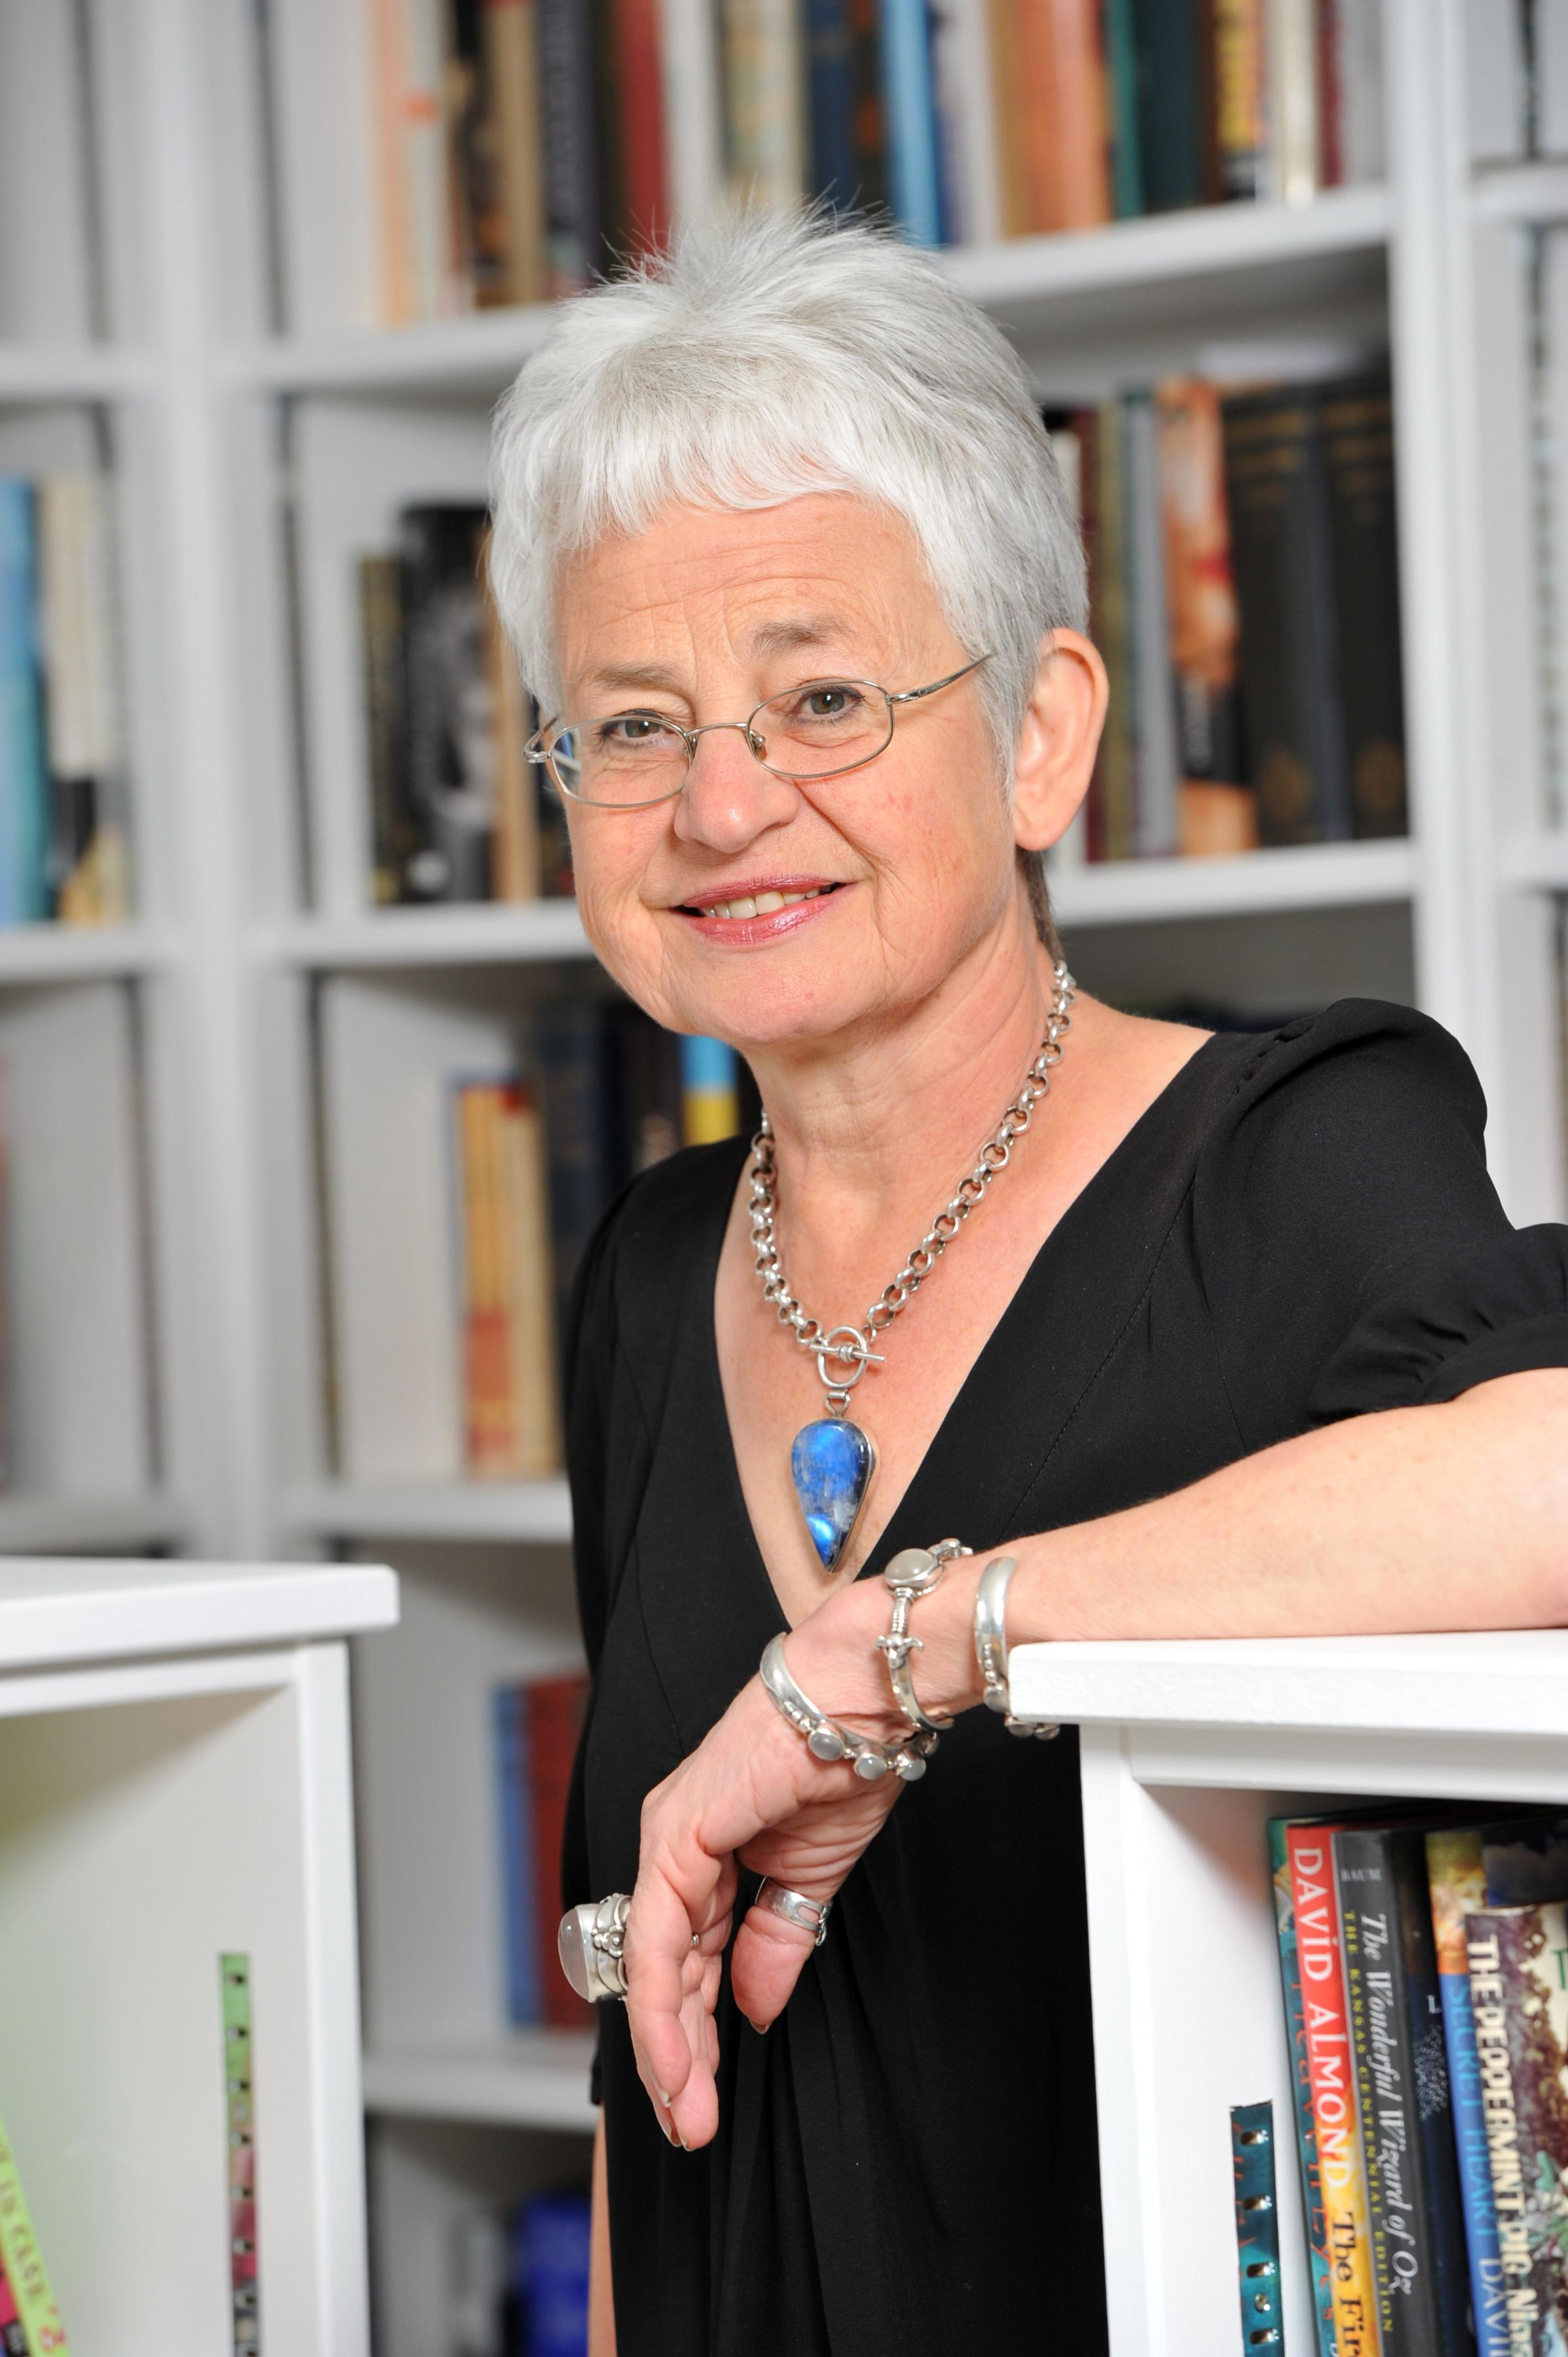 Leading author Jacqueline Wilson to become new University of Roehampton chancellor